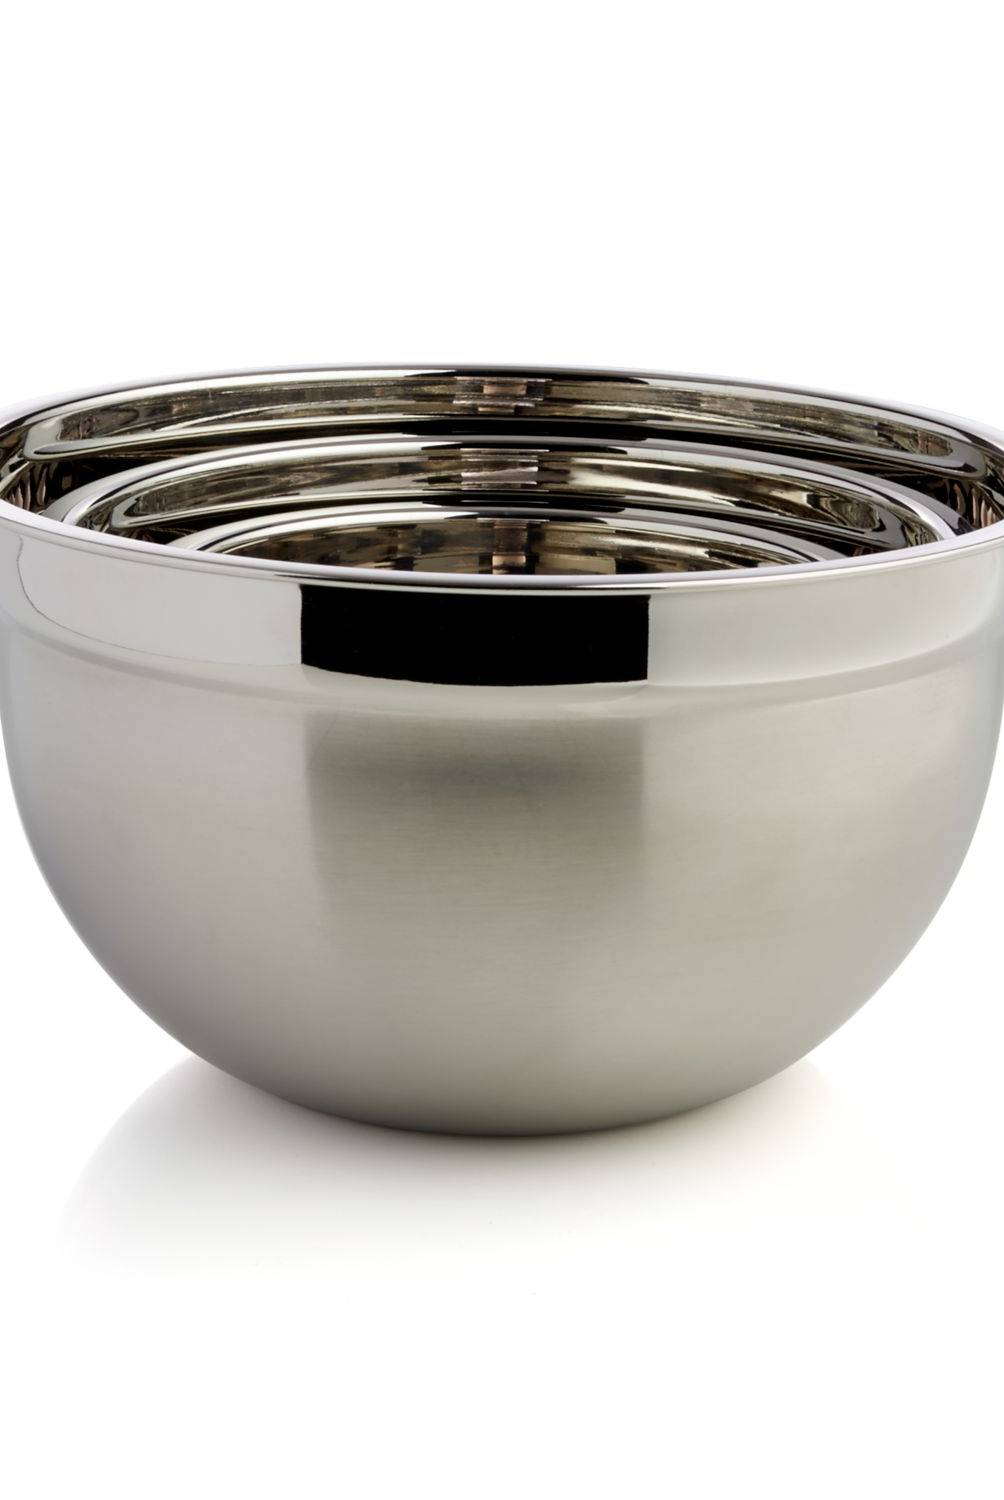 Crate & Barrel - Bowl de Preparar en Acero Inoxidable 26 x 14 cm